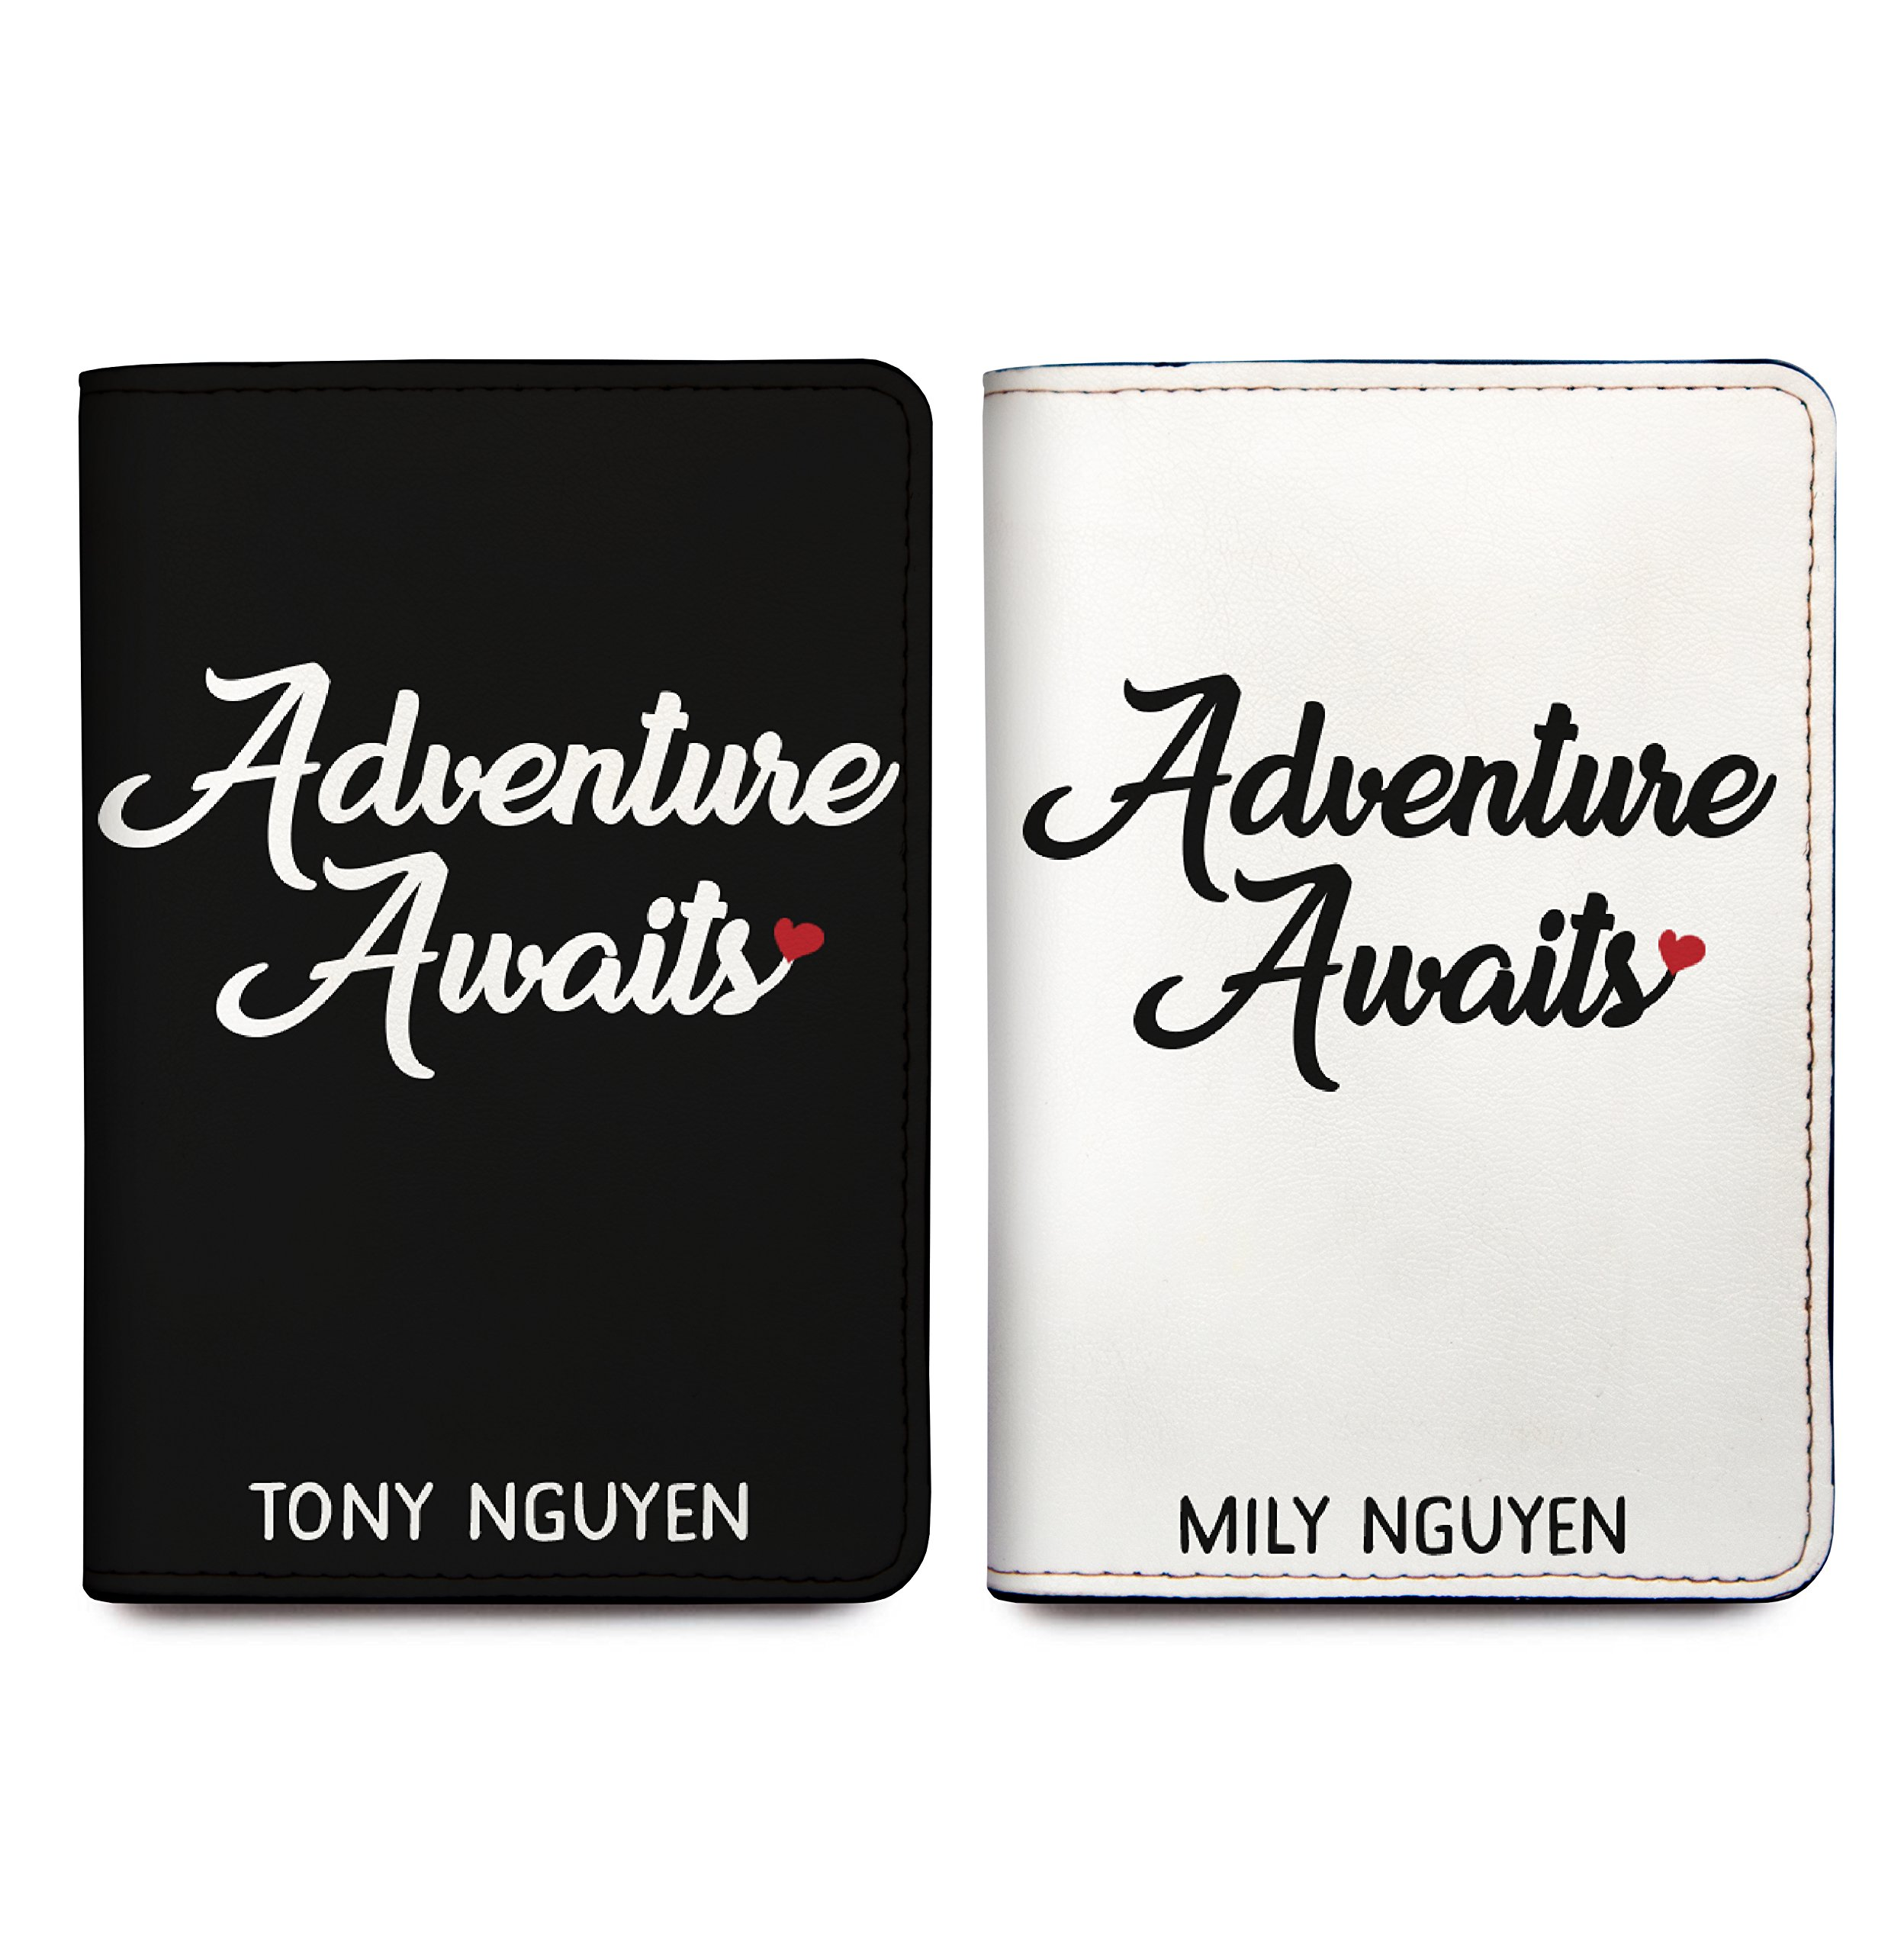 Adventure Awaits - Couple Passport Holder Personalized Passport Cover Set of 2 by With Love From Julie (Image #1)